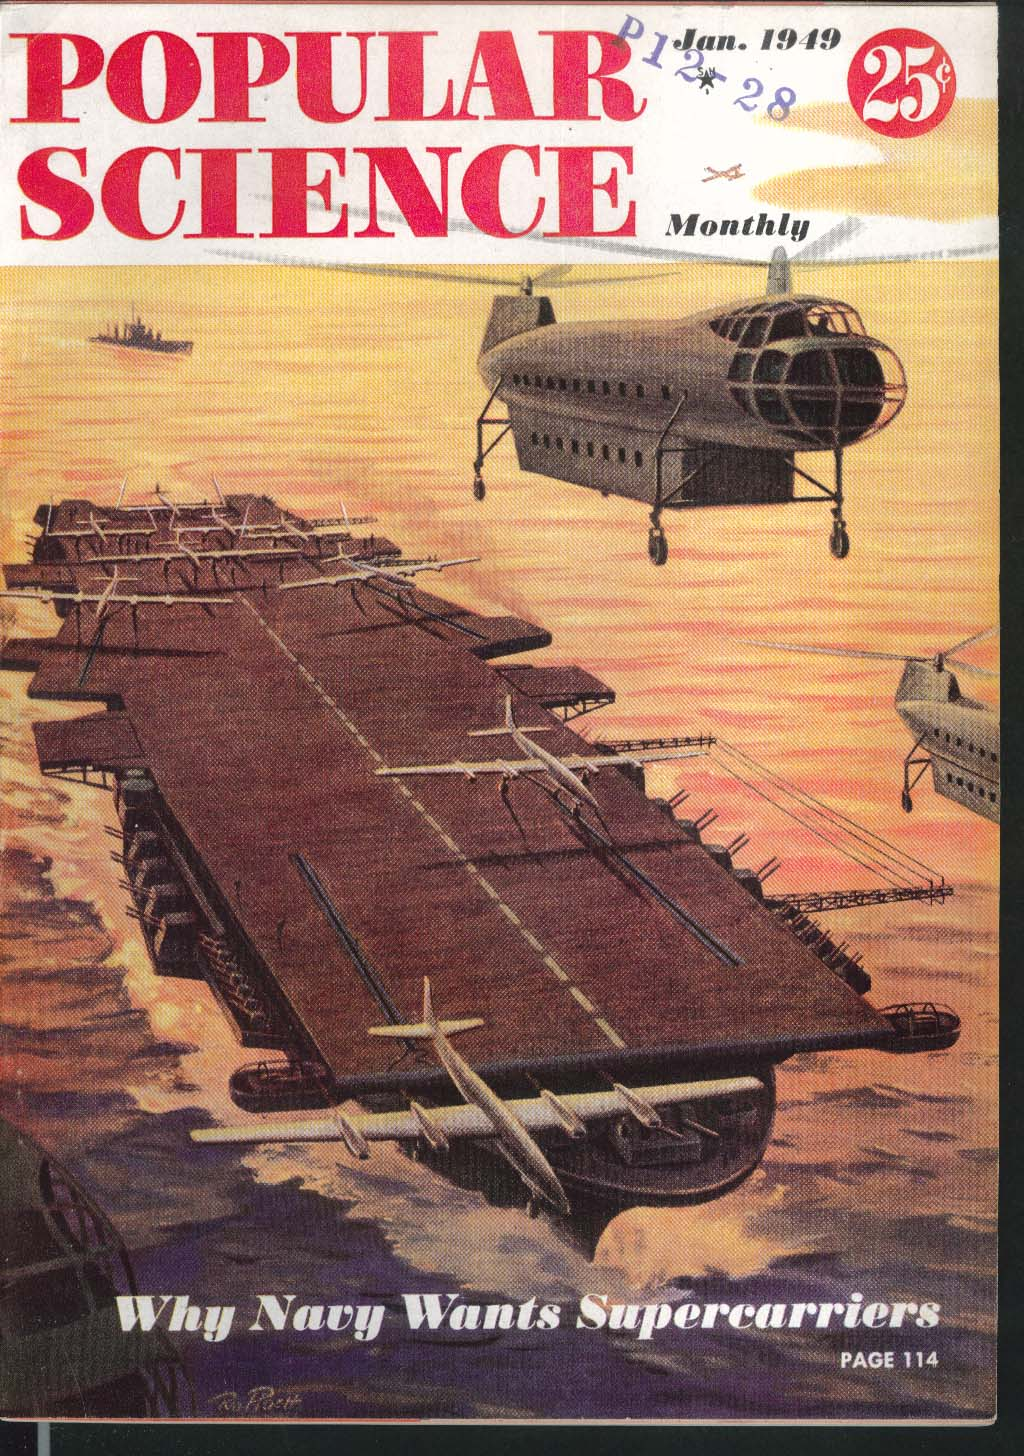 POPULAR SCIENCE Navy Supercarriers Cadillac Ultrafax Ramjets 1 1949